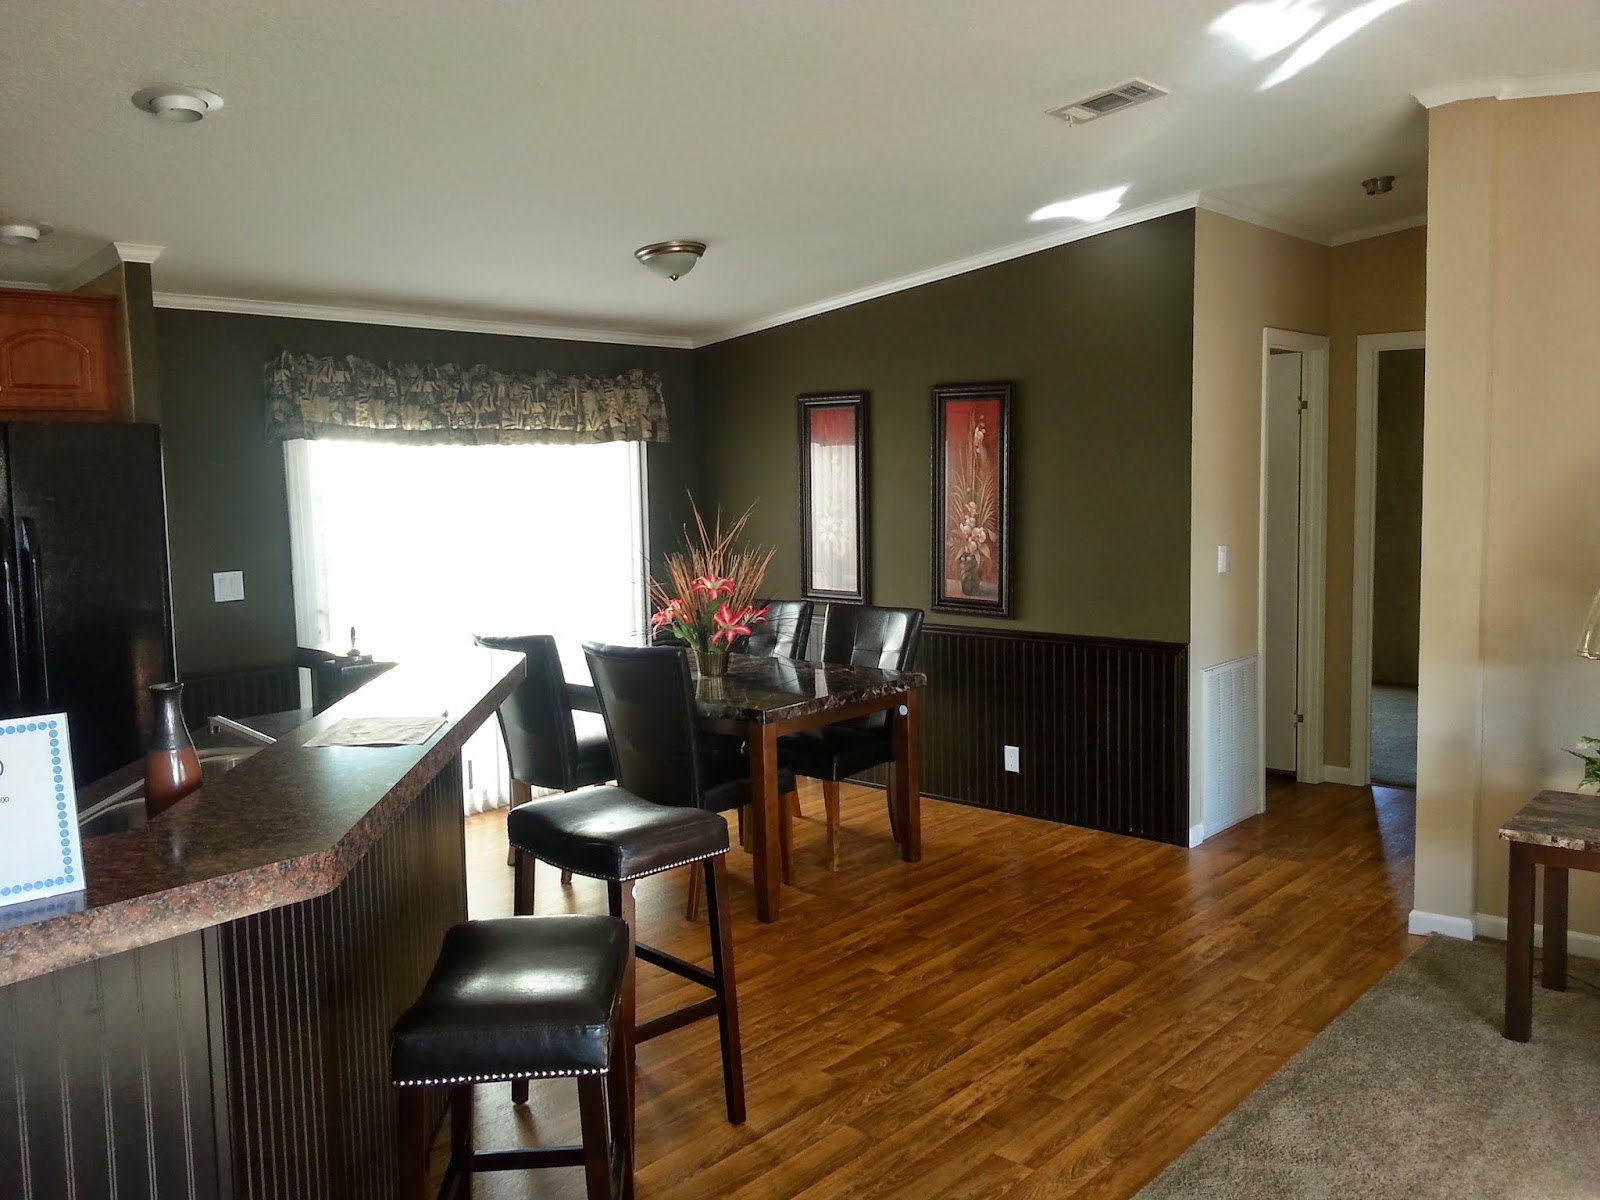 Miley 3 Bedroom 2 Baths 1378 square feet Home on Display  Prestige Home Centers Manufactured